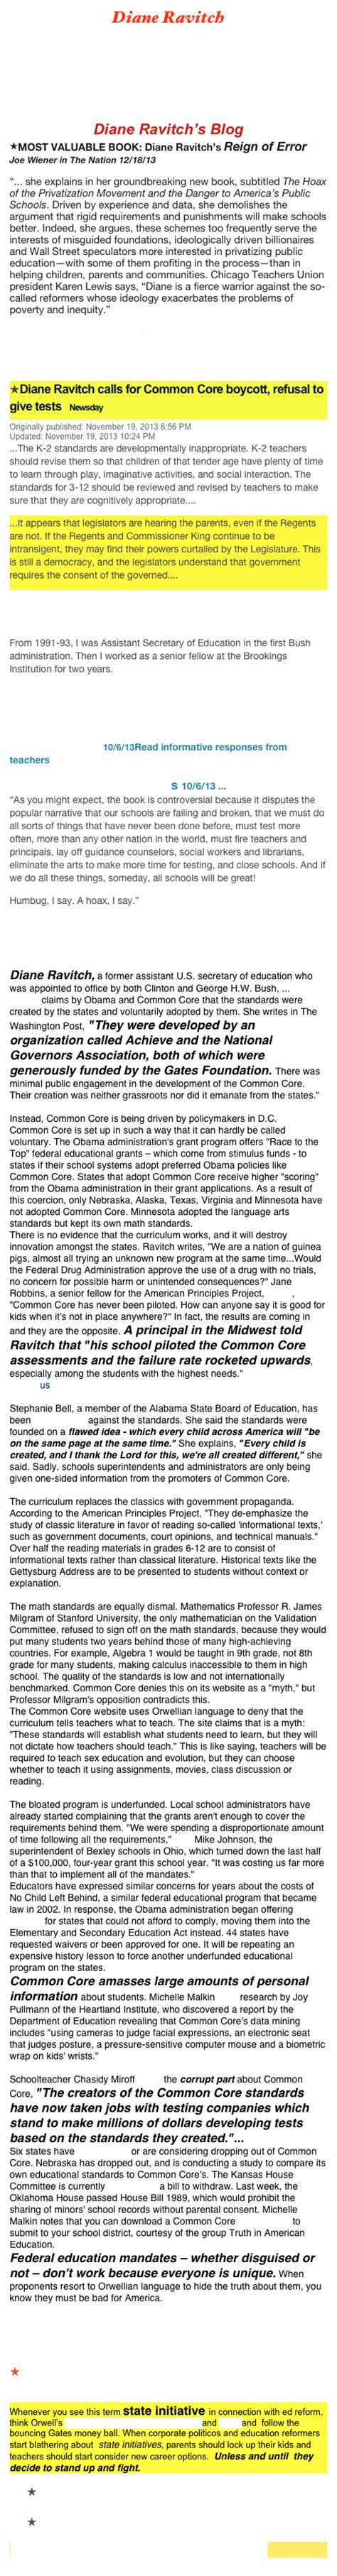 Buku Standard Readings For Senior Middle Schools Revised Edi pearson conglomerate diane ravitch blogs web